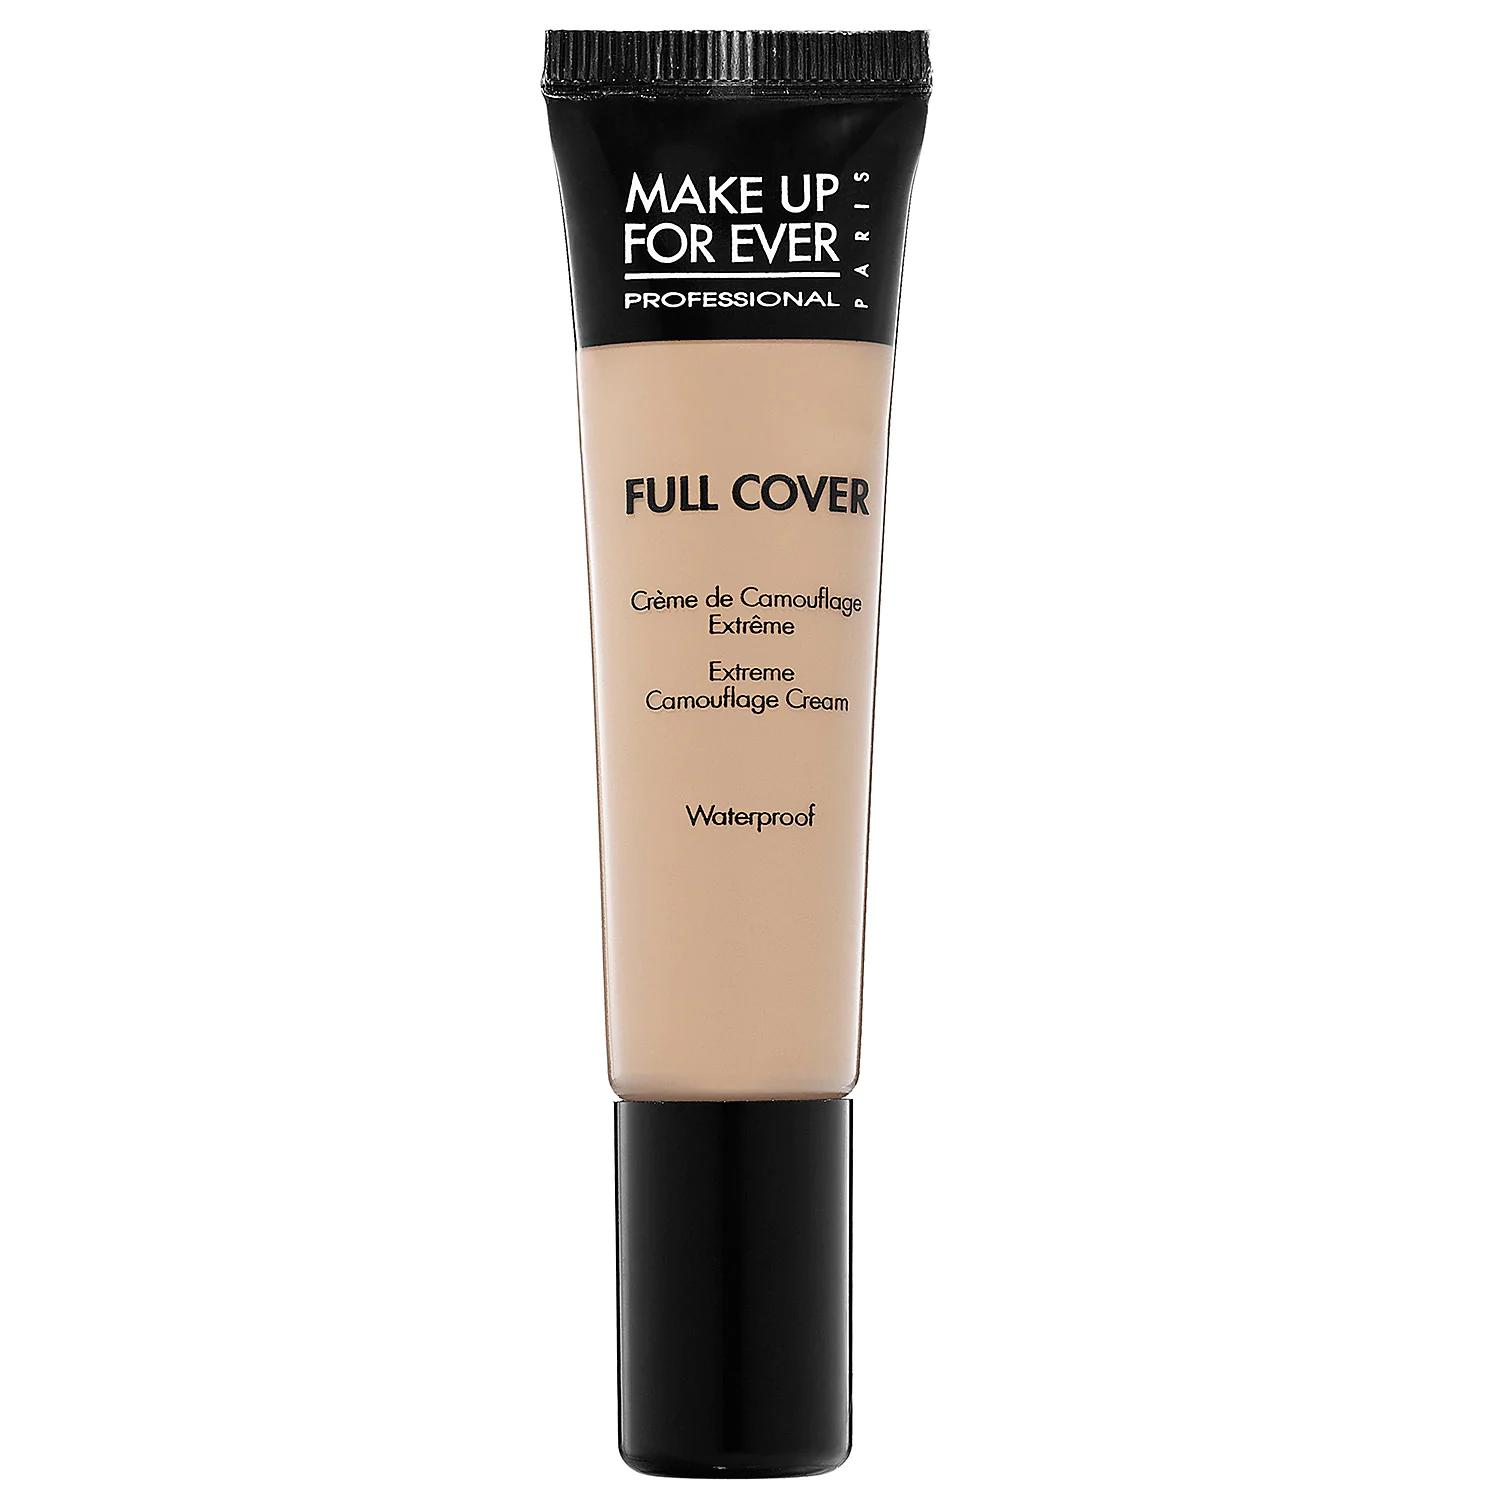 Makeup Forever Full Cover Extreme Camouflage Cream 7